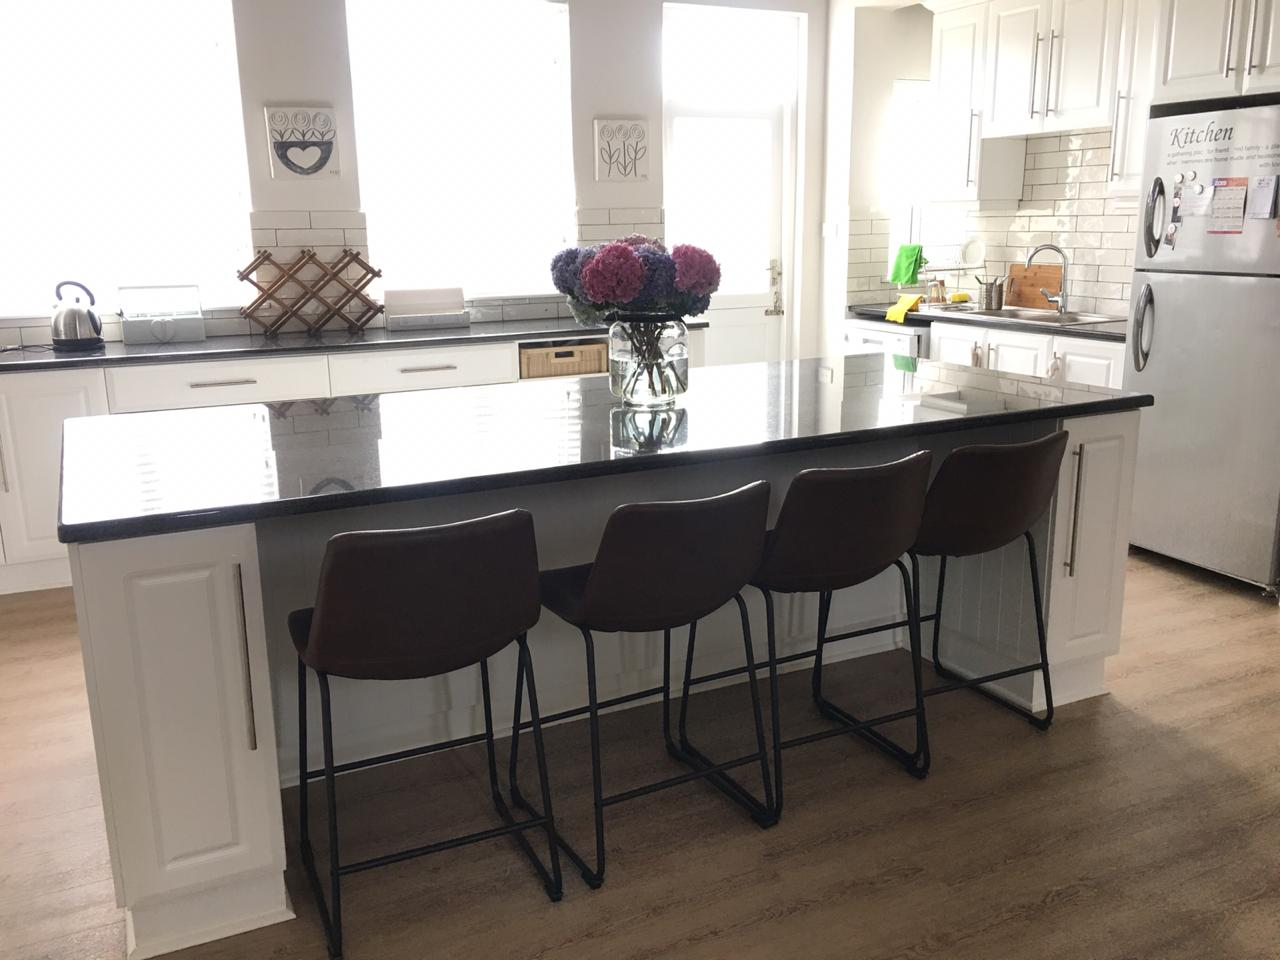 Designer Kitchens, Bathrooms and Bedrooms and Bespoke Furniture, Bespoke Joinery